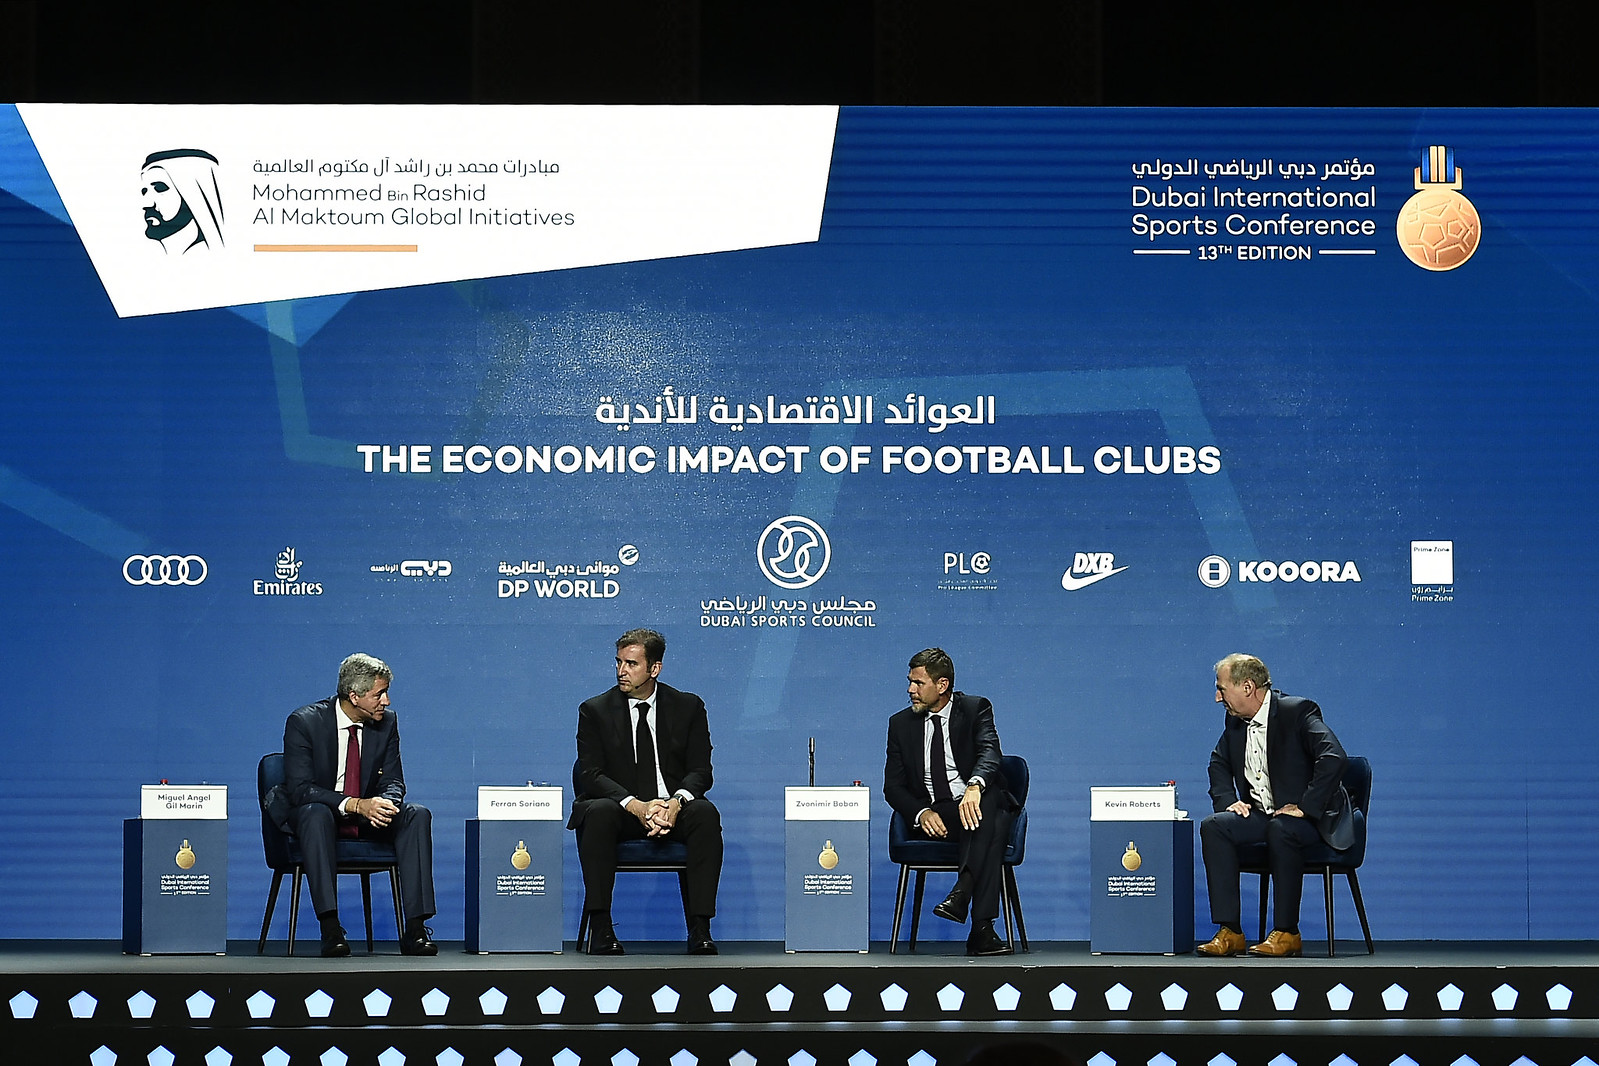 13th edition of the Dubai International Sports Conference